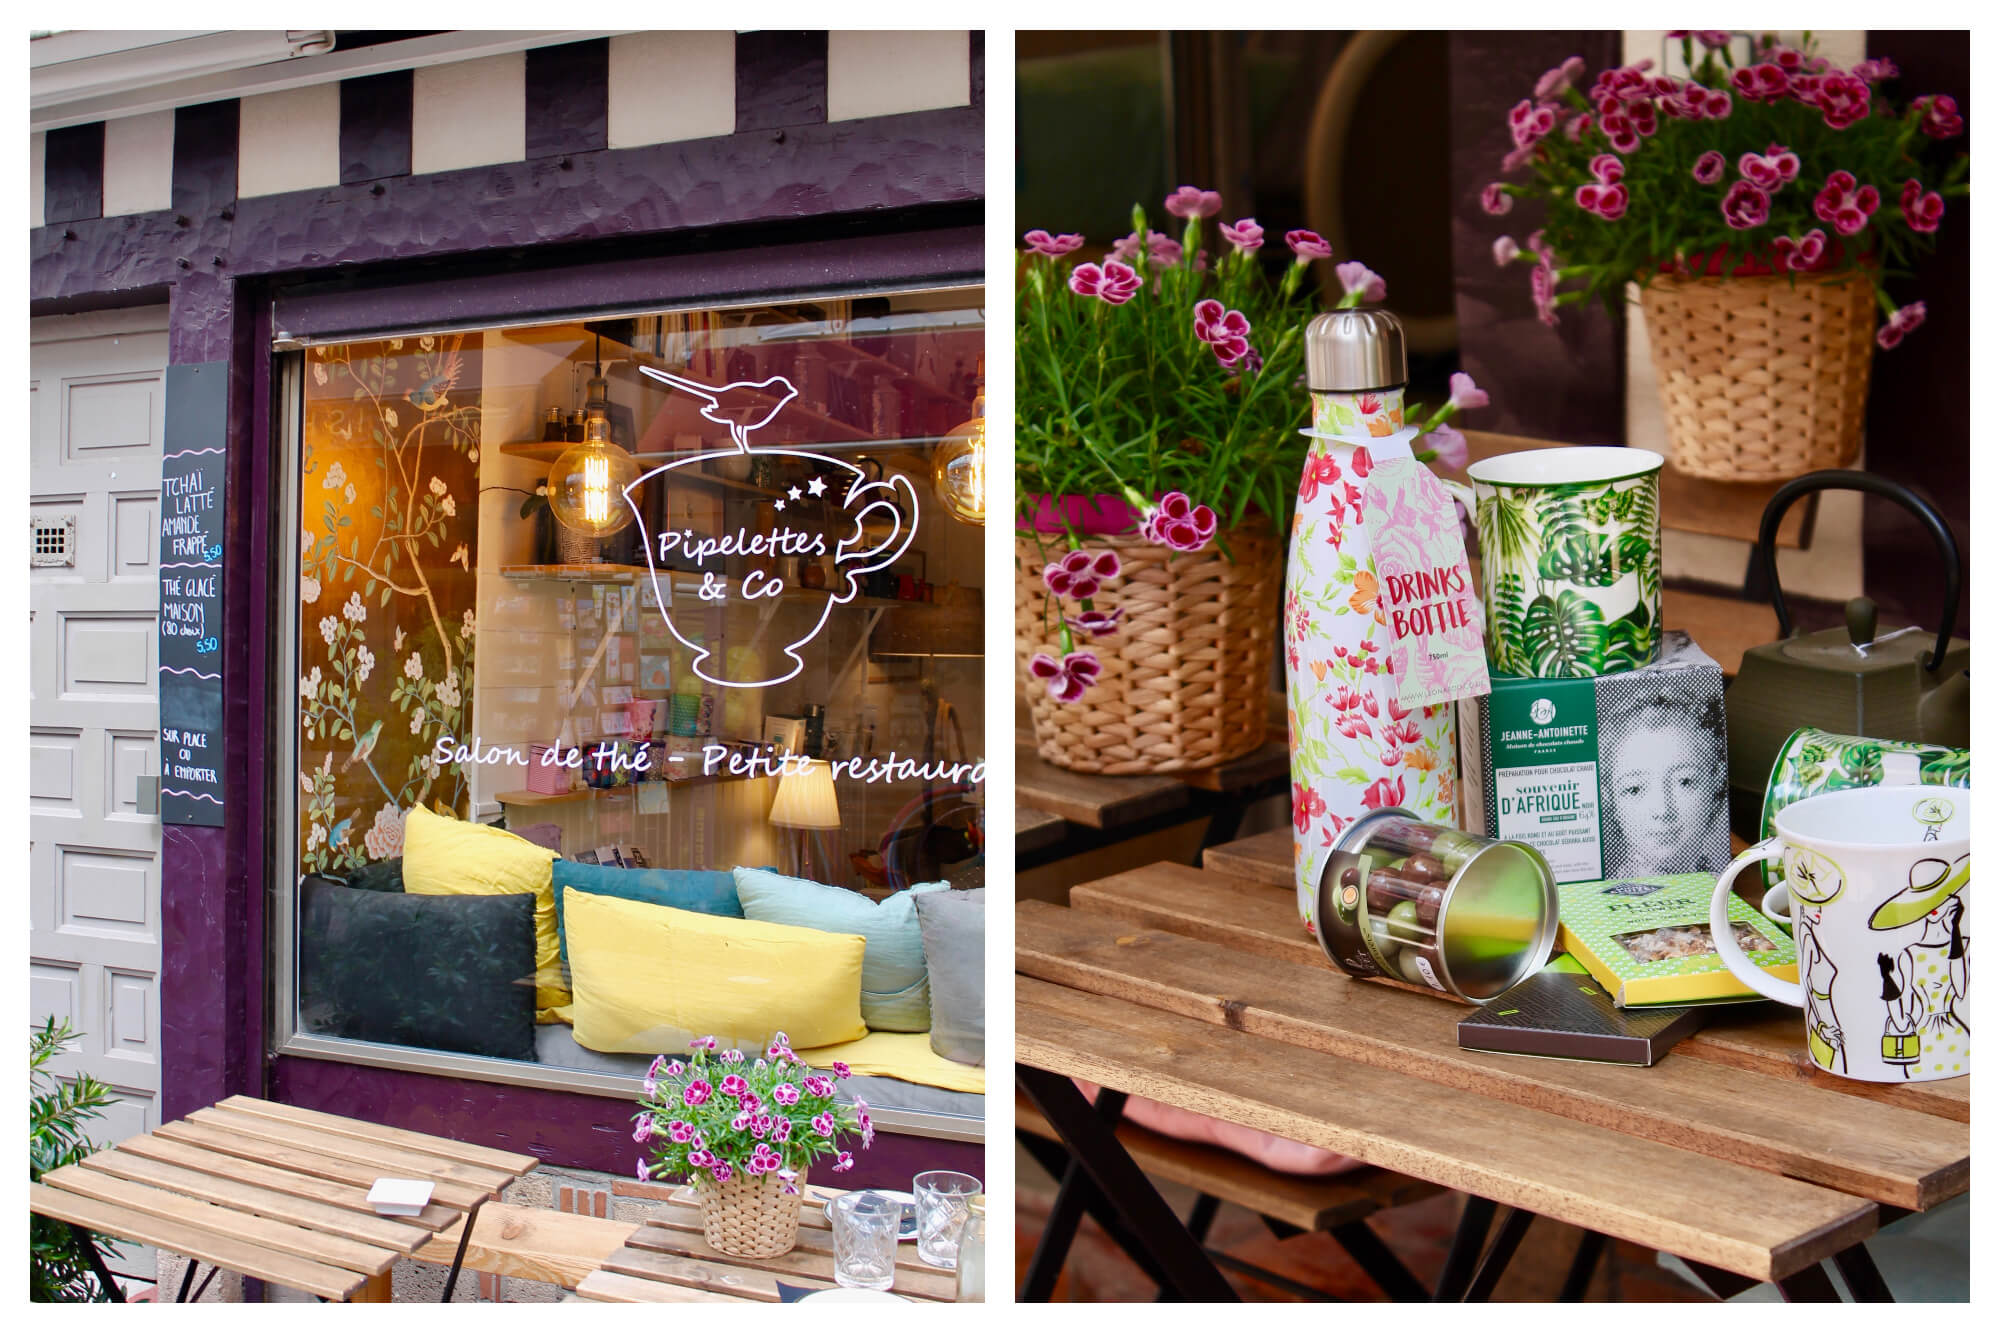 On left: The terrace of the tea salon and shop, Pipelettes & Co, invite passerby to stop in for an afternoon snack in Trouville-sur-Mer. On right: Tea, snacks, and flowers spill onto a table on the terrace of Pipelettes & Co, where visitors can discover different types of teas and sit for a cup in Trouville-sur-Mer.